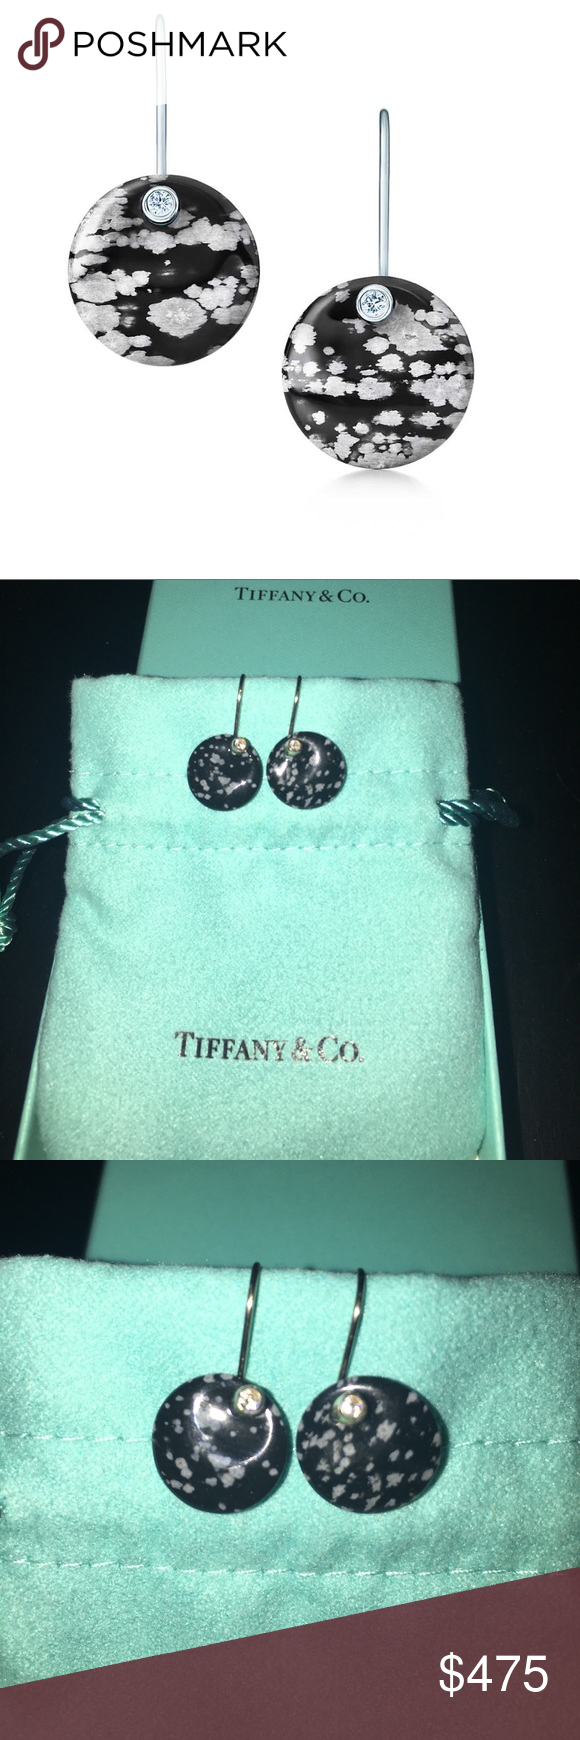 d1c917fae New Tiffany & Co Elsa Peretti Disc Earrings Authentic Tiffany & Co round  earrings made of